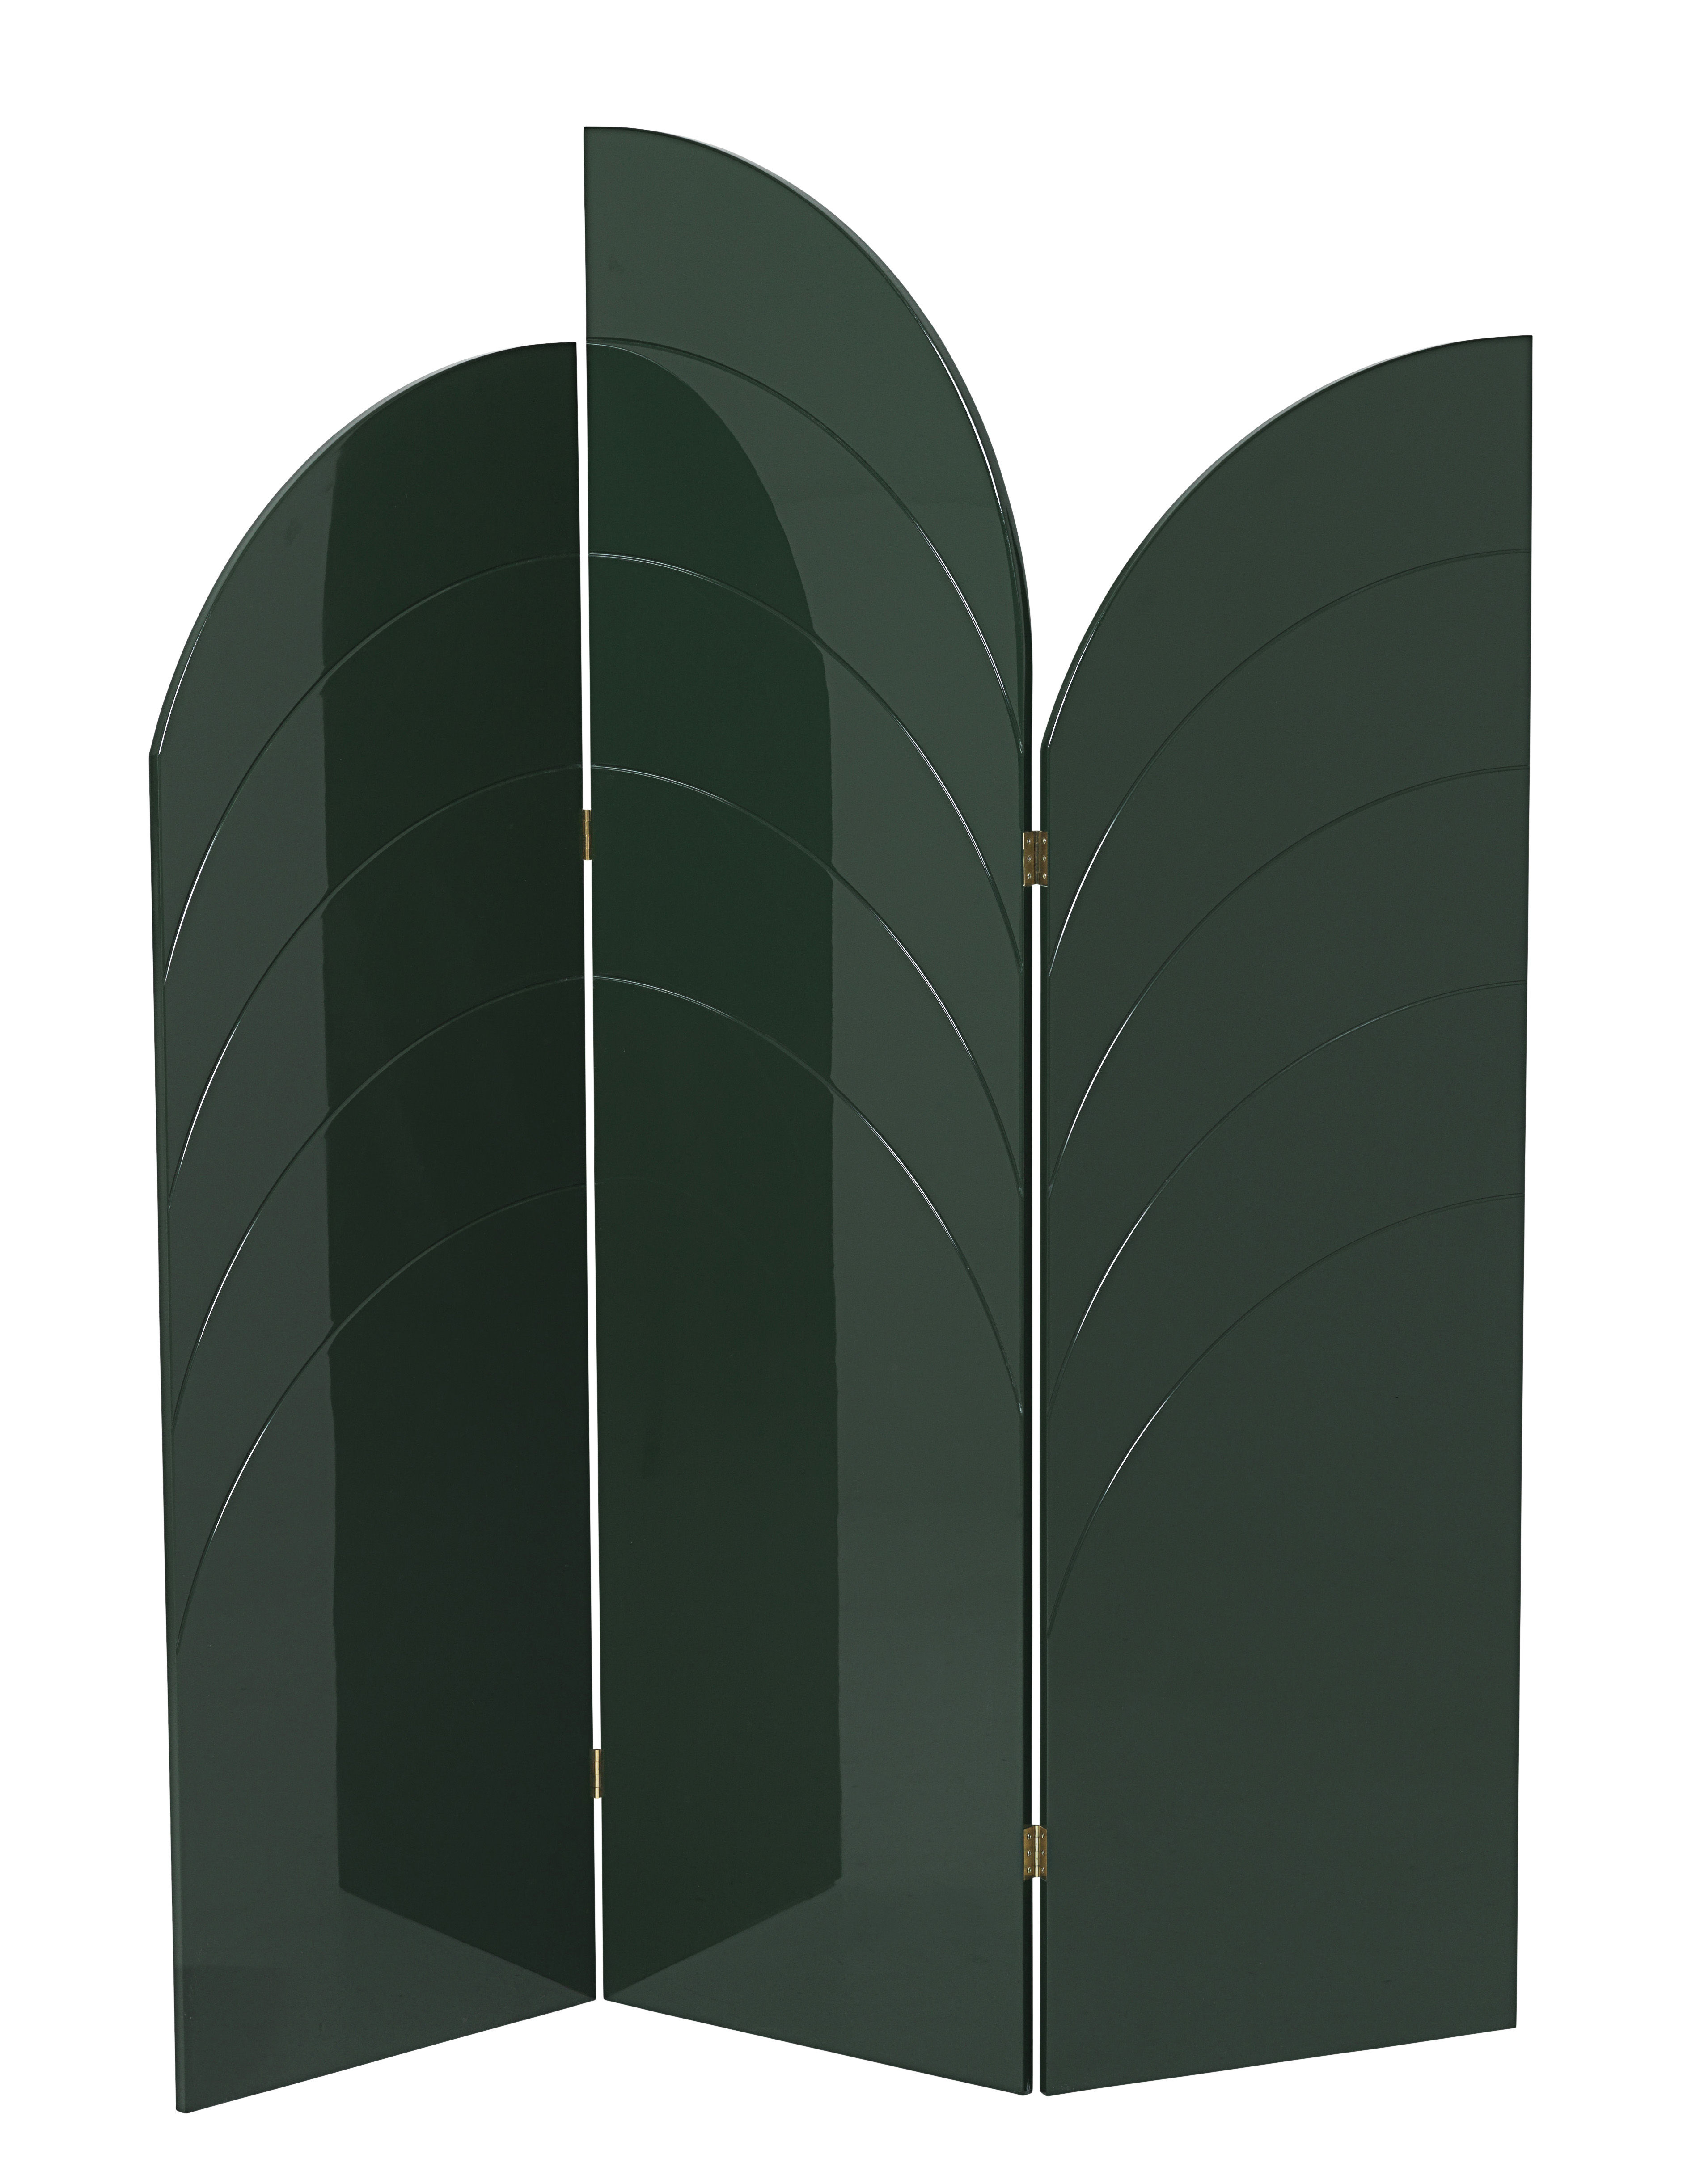 Furniture - Room Dividers & Screens - Unfold Folding screen - / MDF - L 150 x  H180 cm by Ferm Living - Dark green - Lacquered MDF